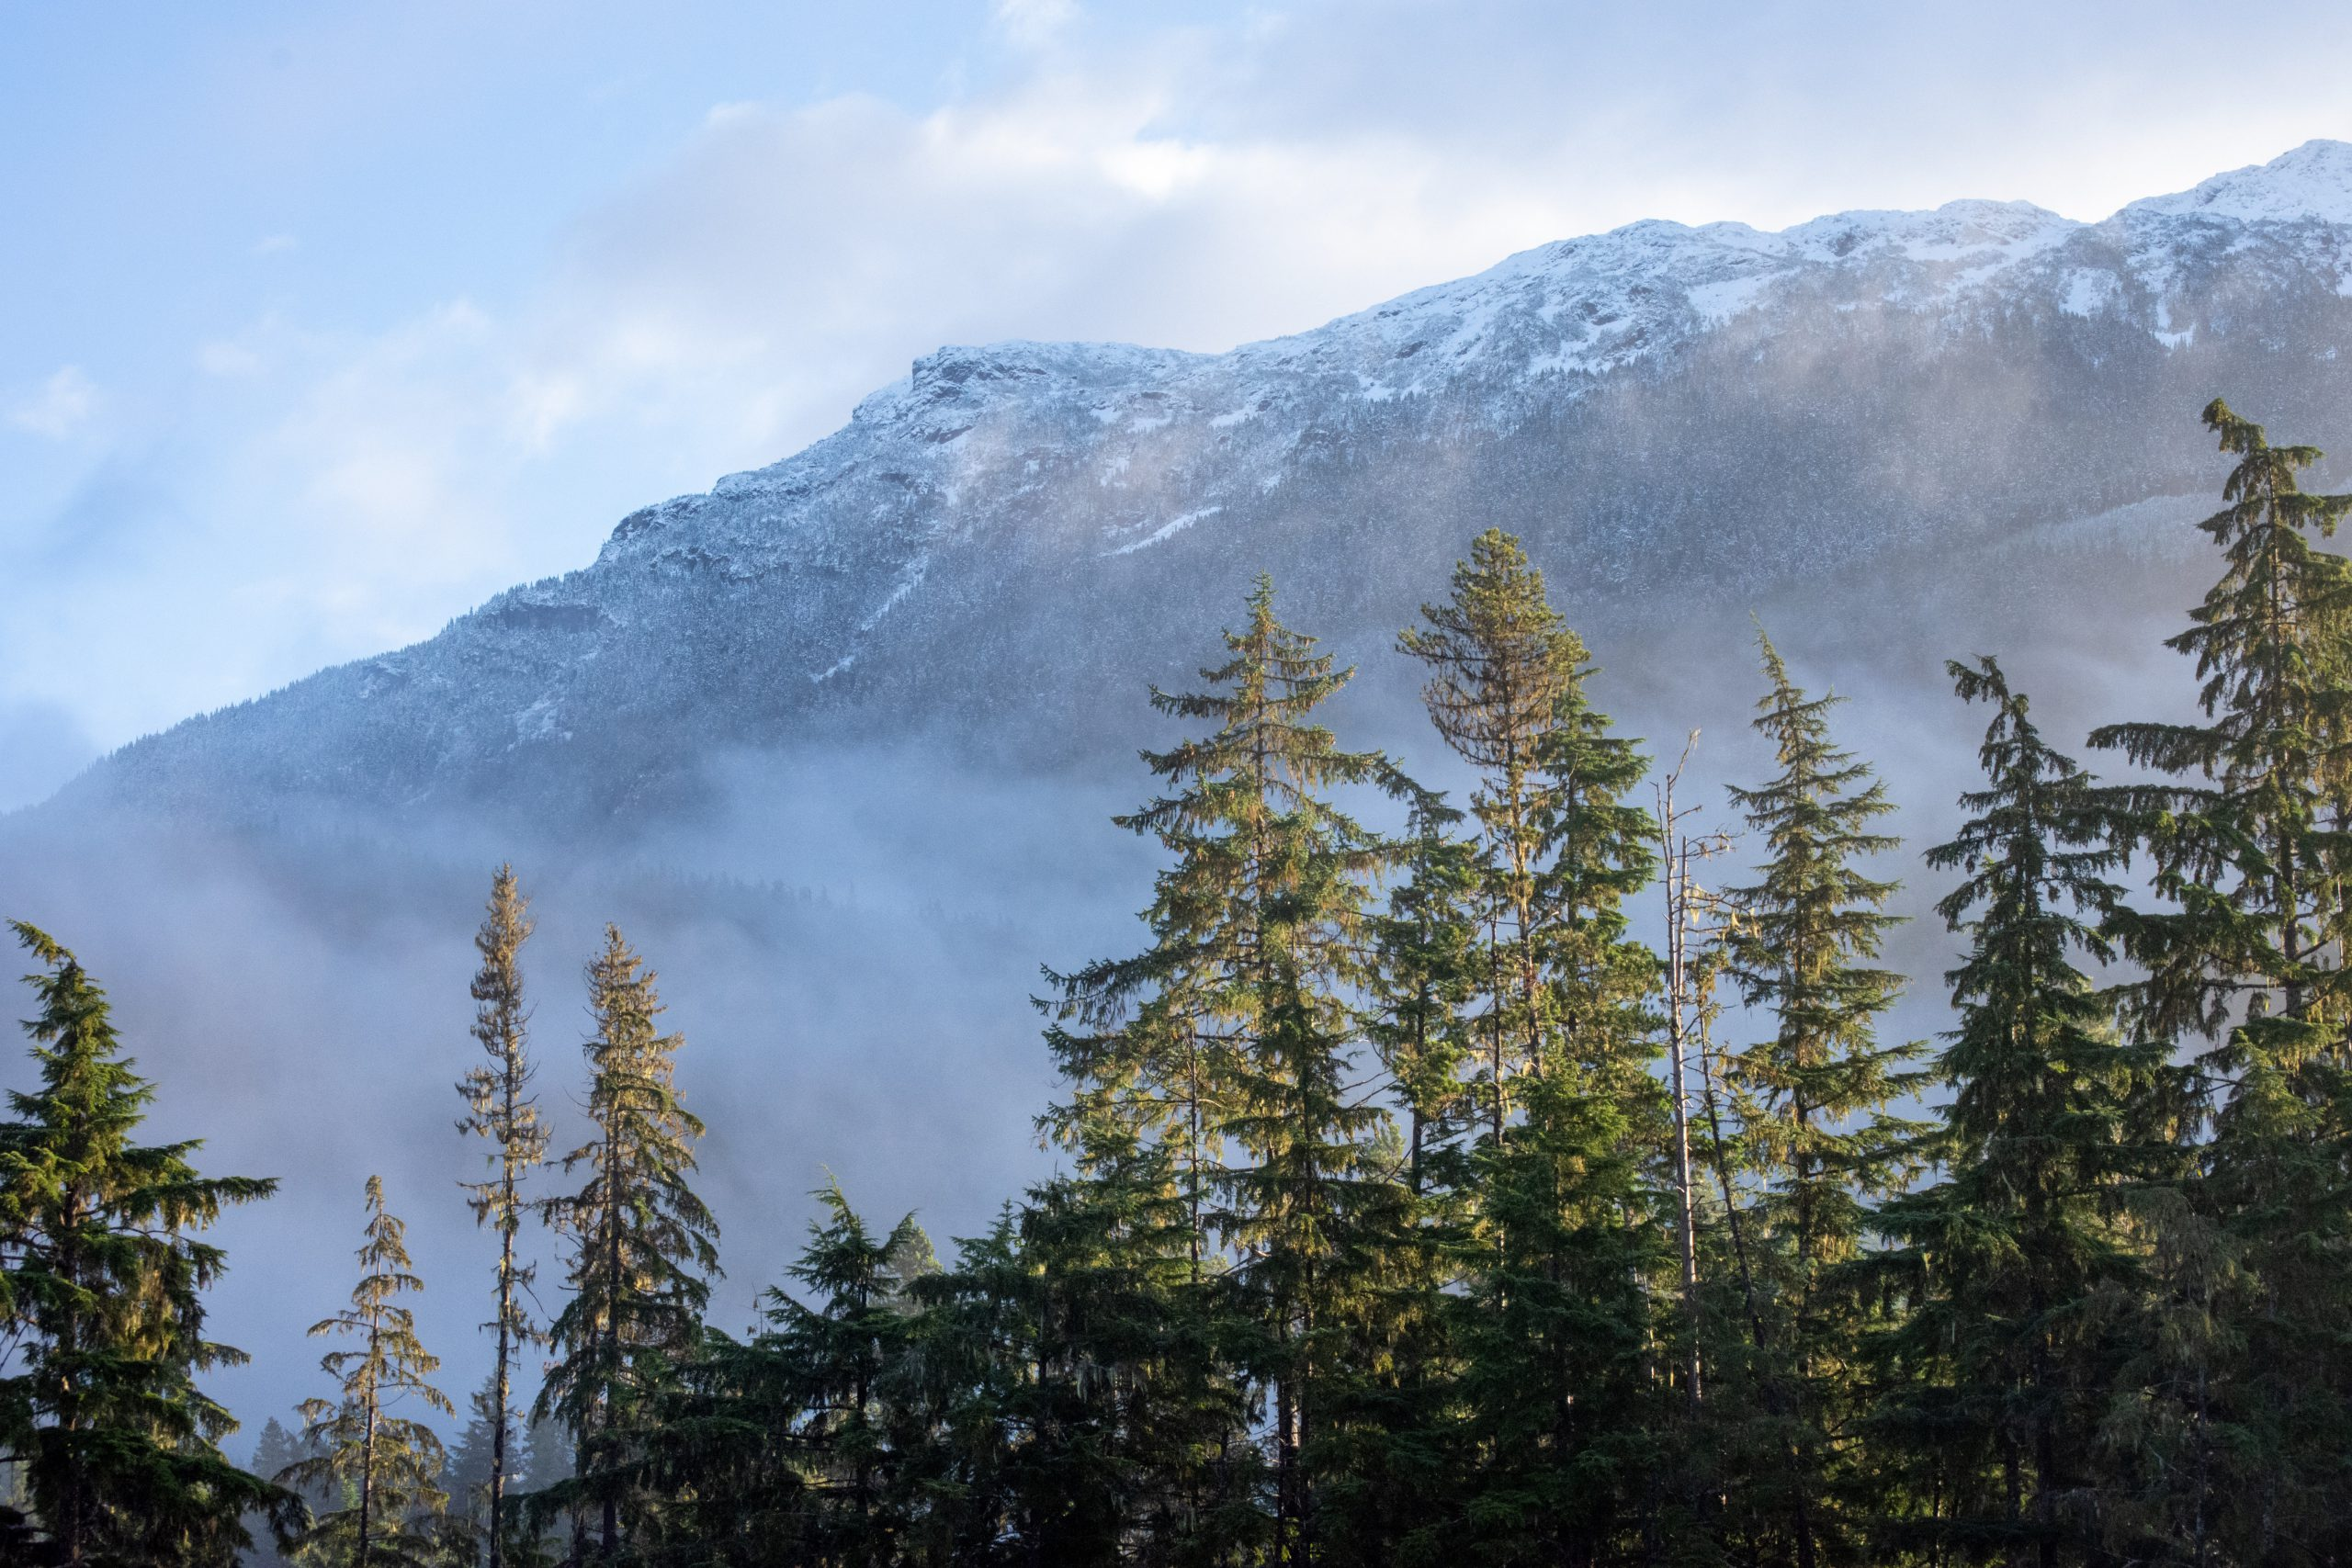 British Columbia forest trees and snowy mountain